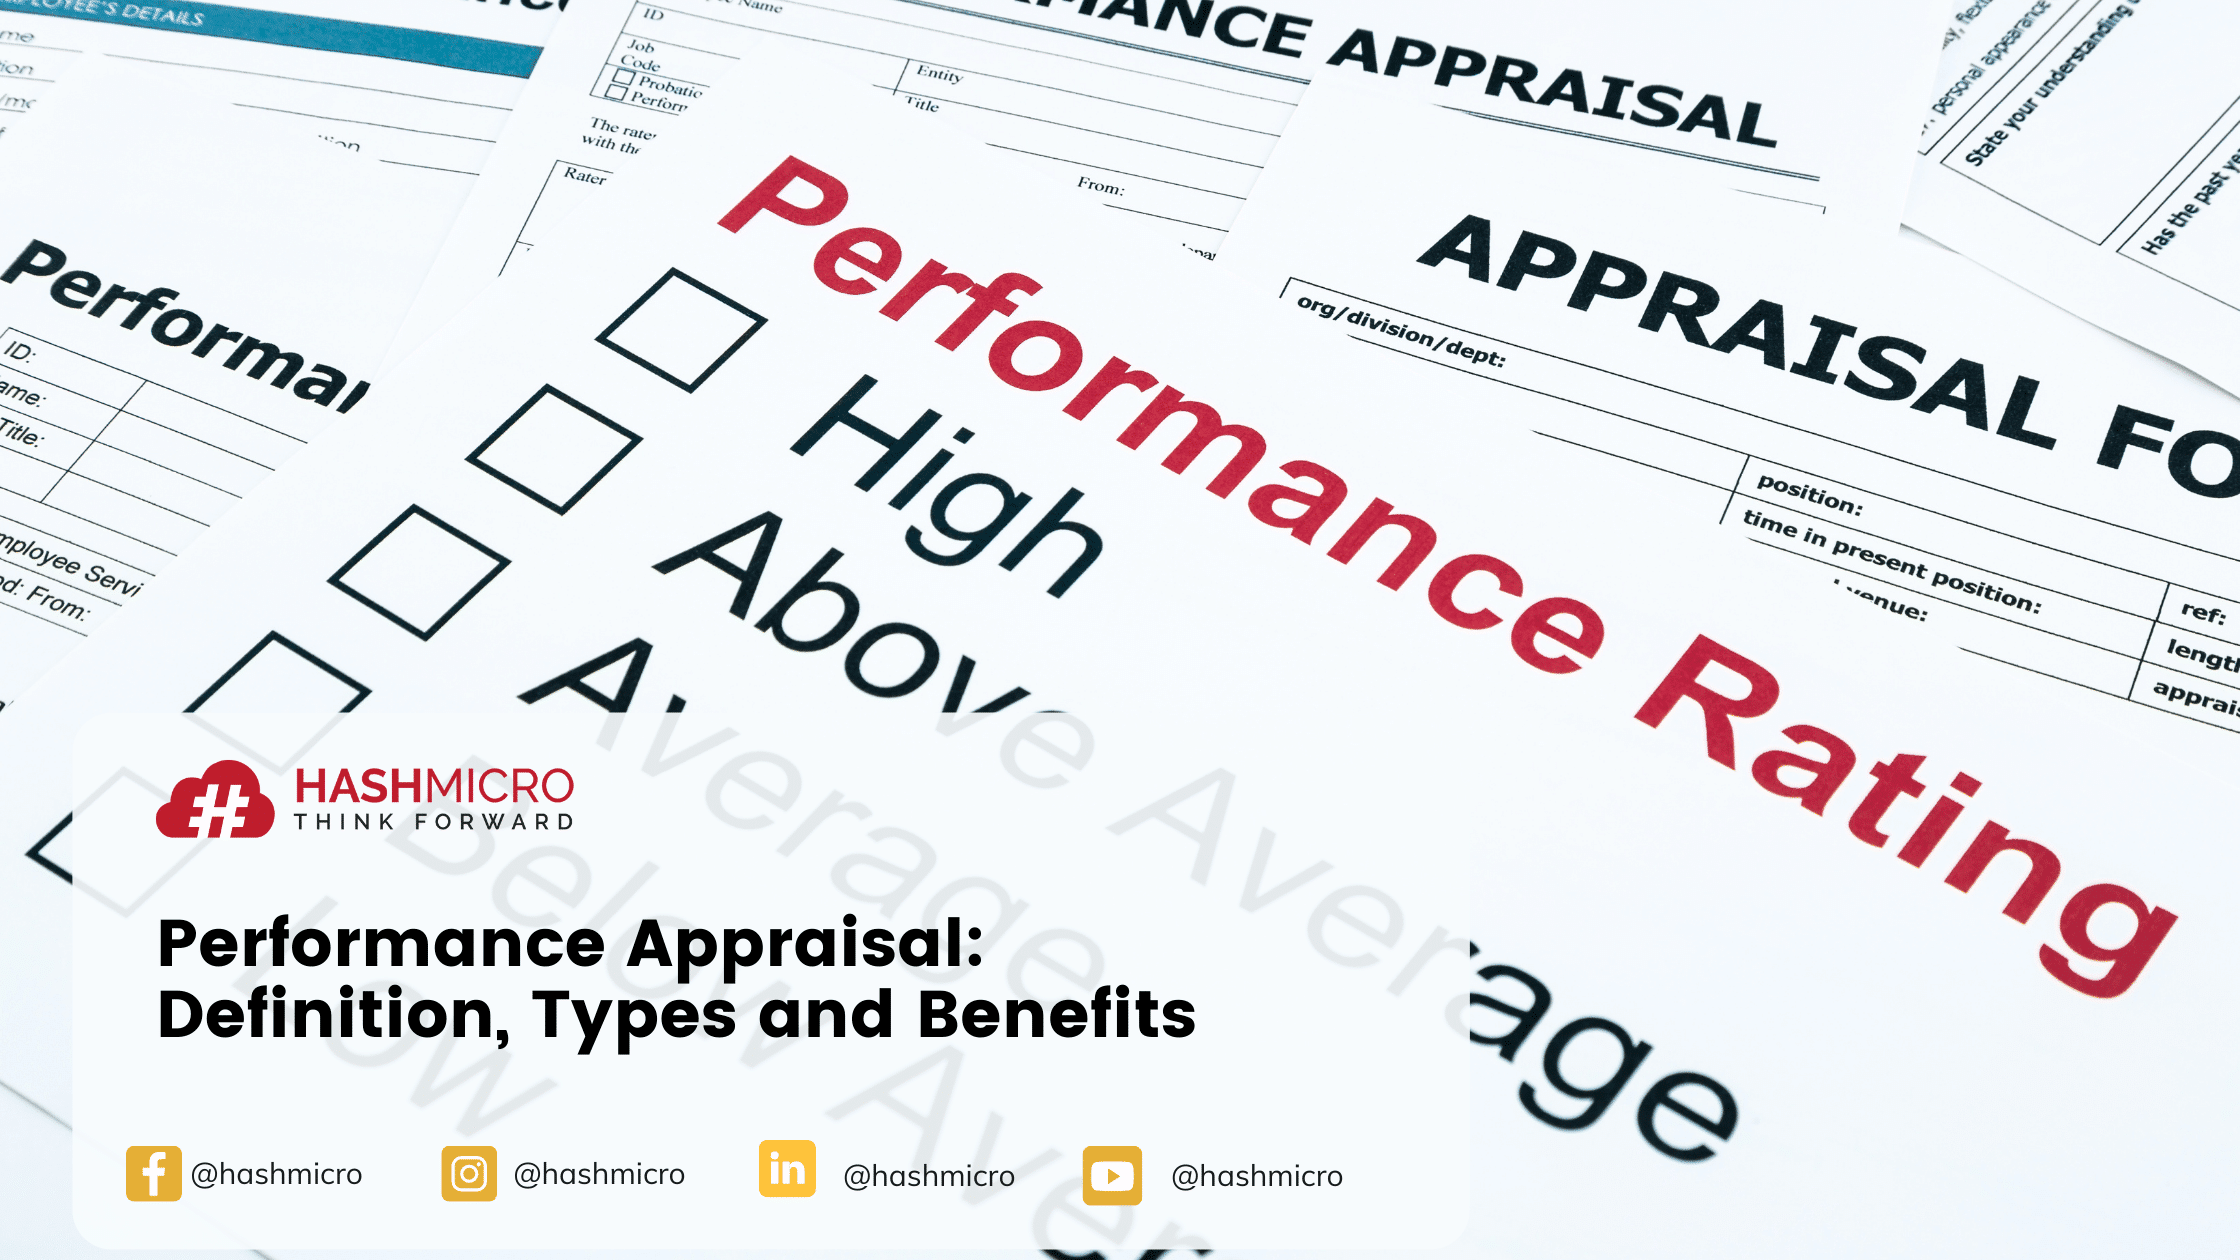 Performance Appraisal: Types and Benefits in Managing Employees